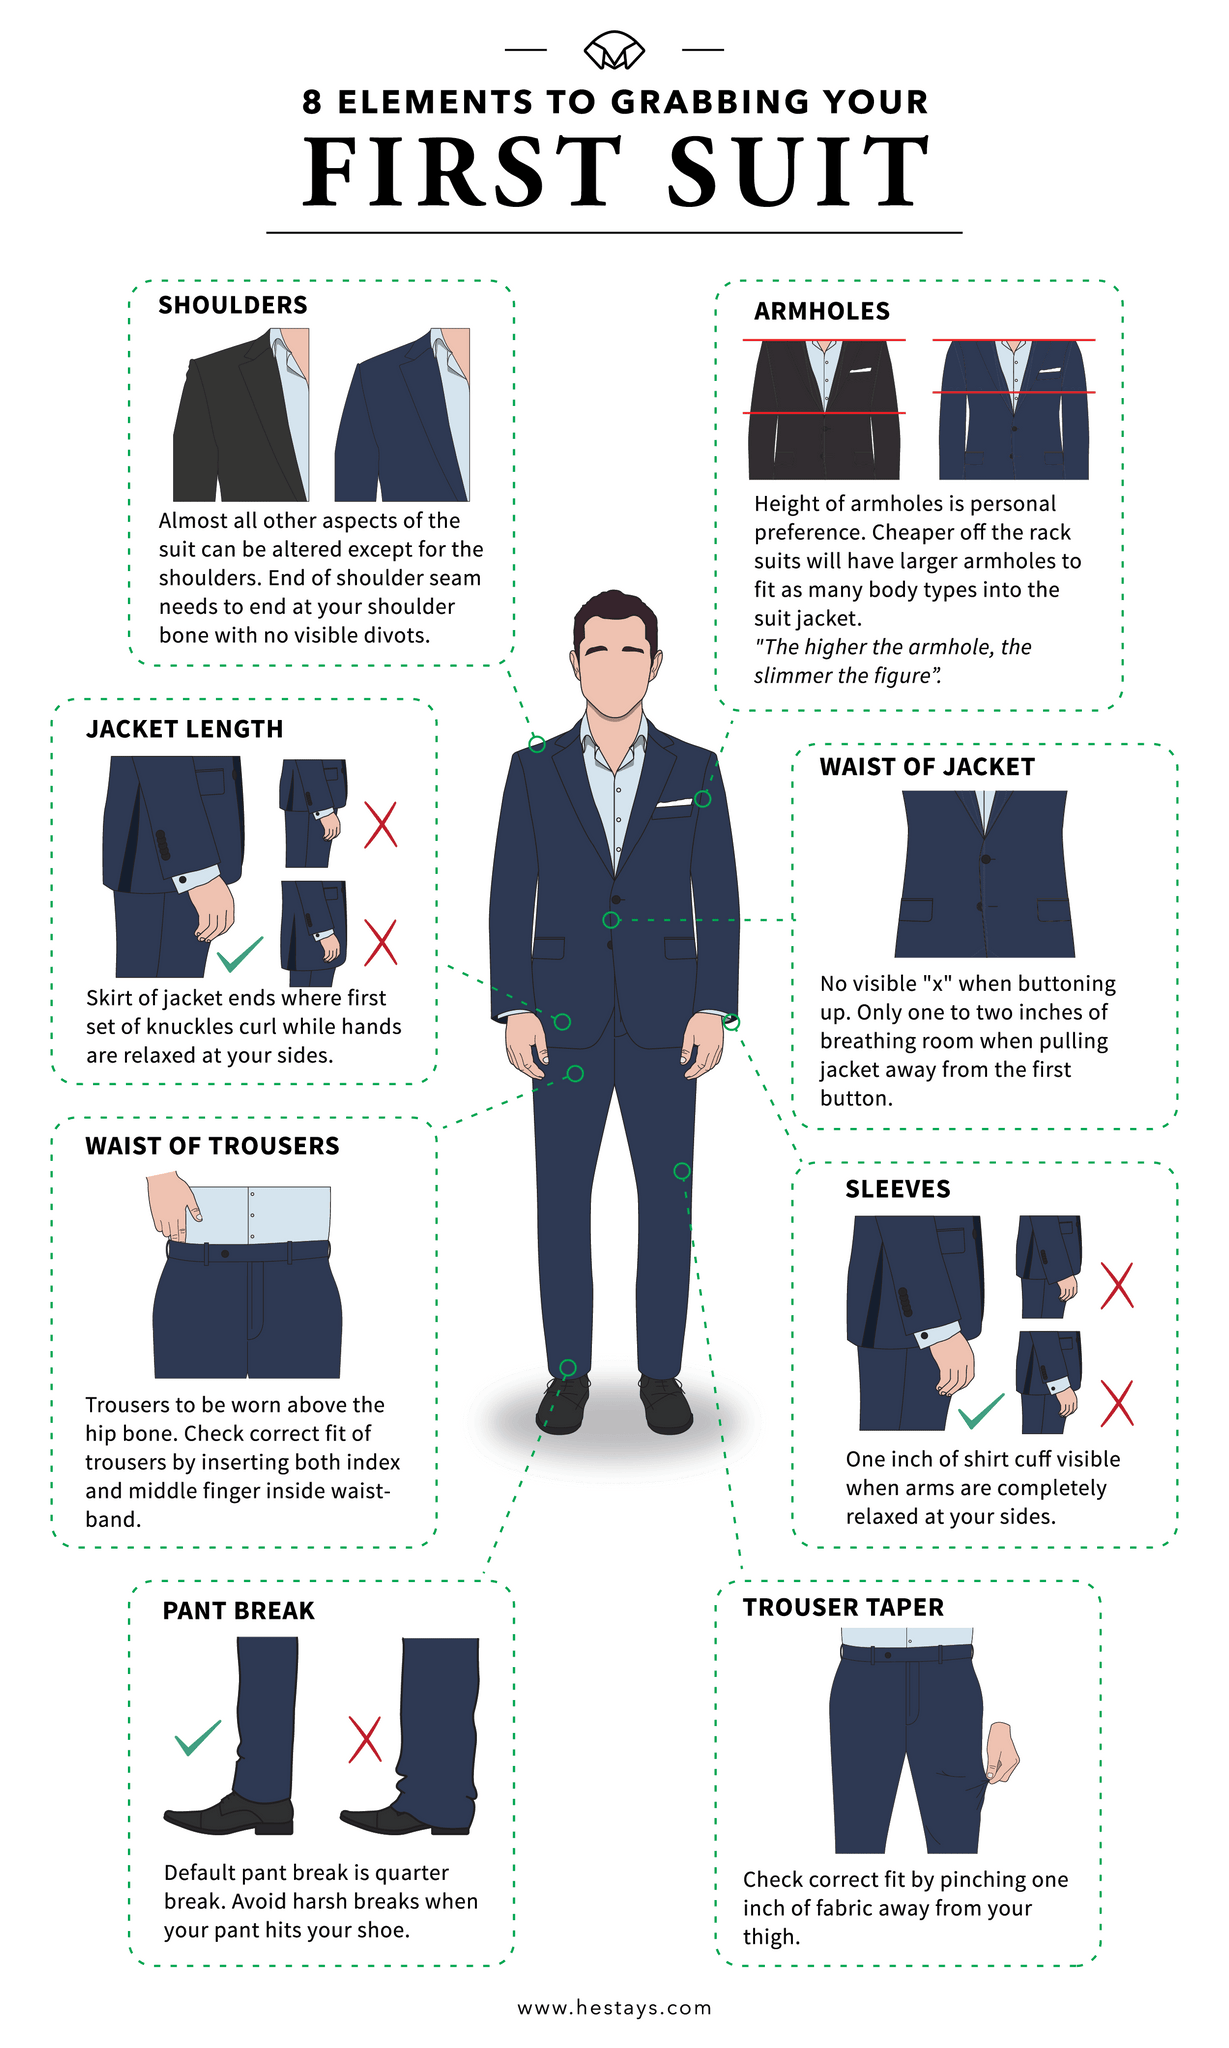 How a Suit Should Fit Infographic